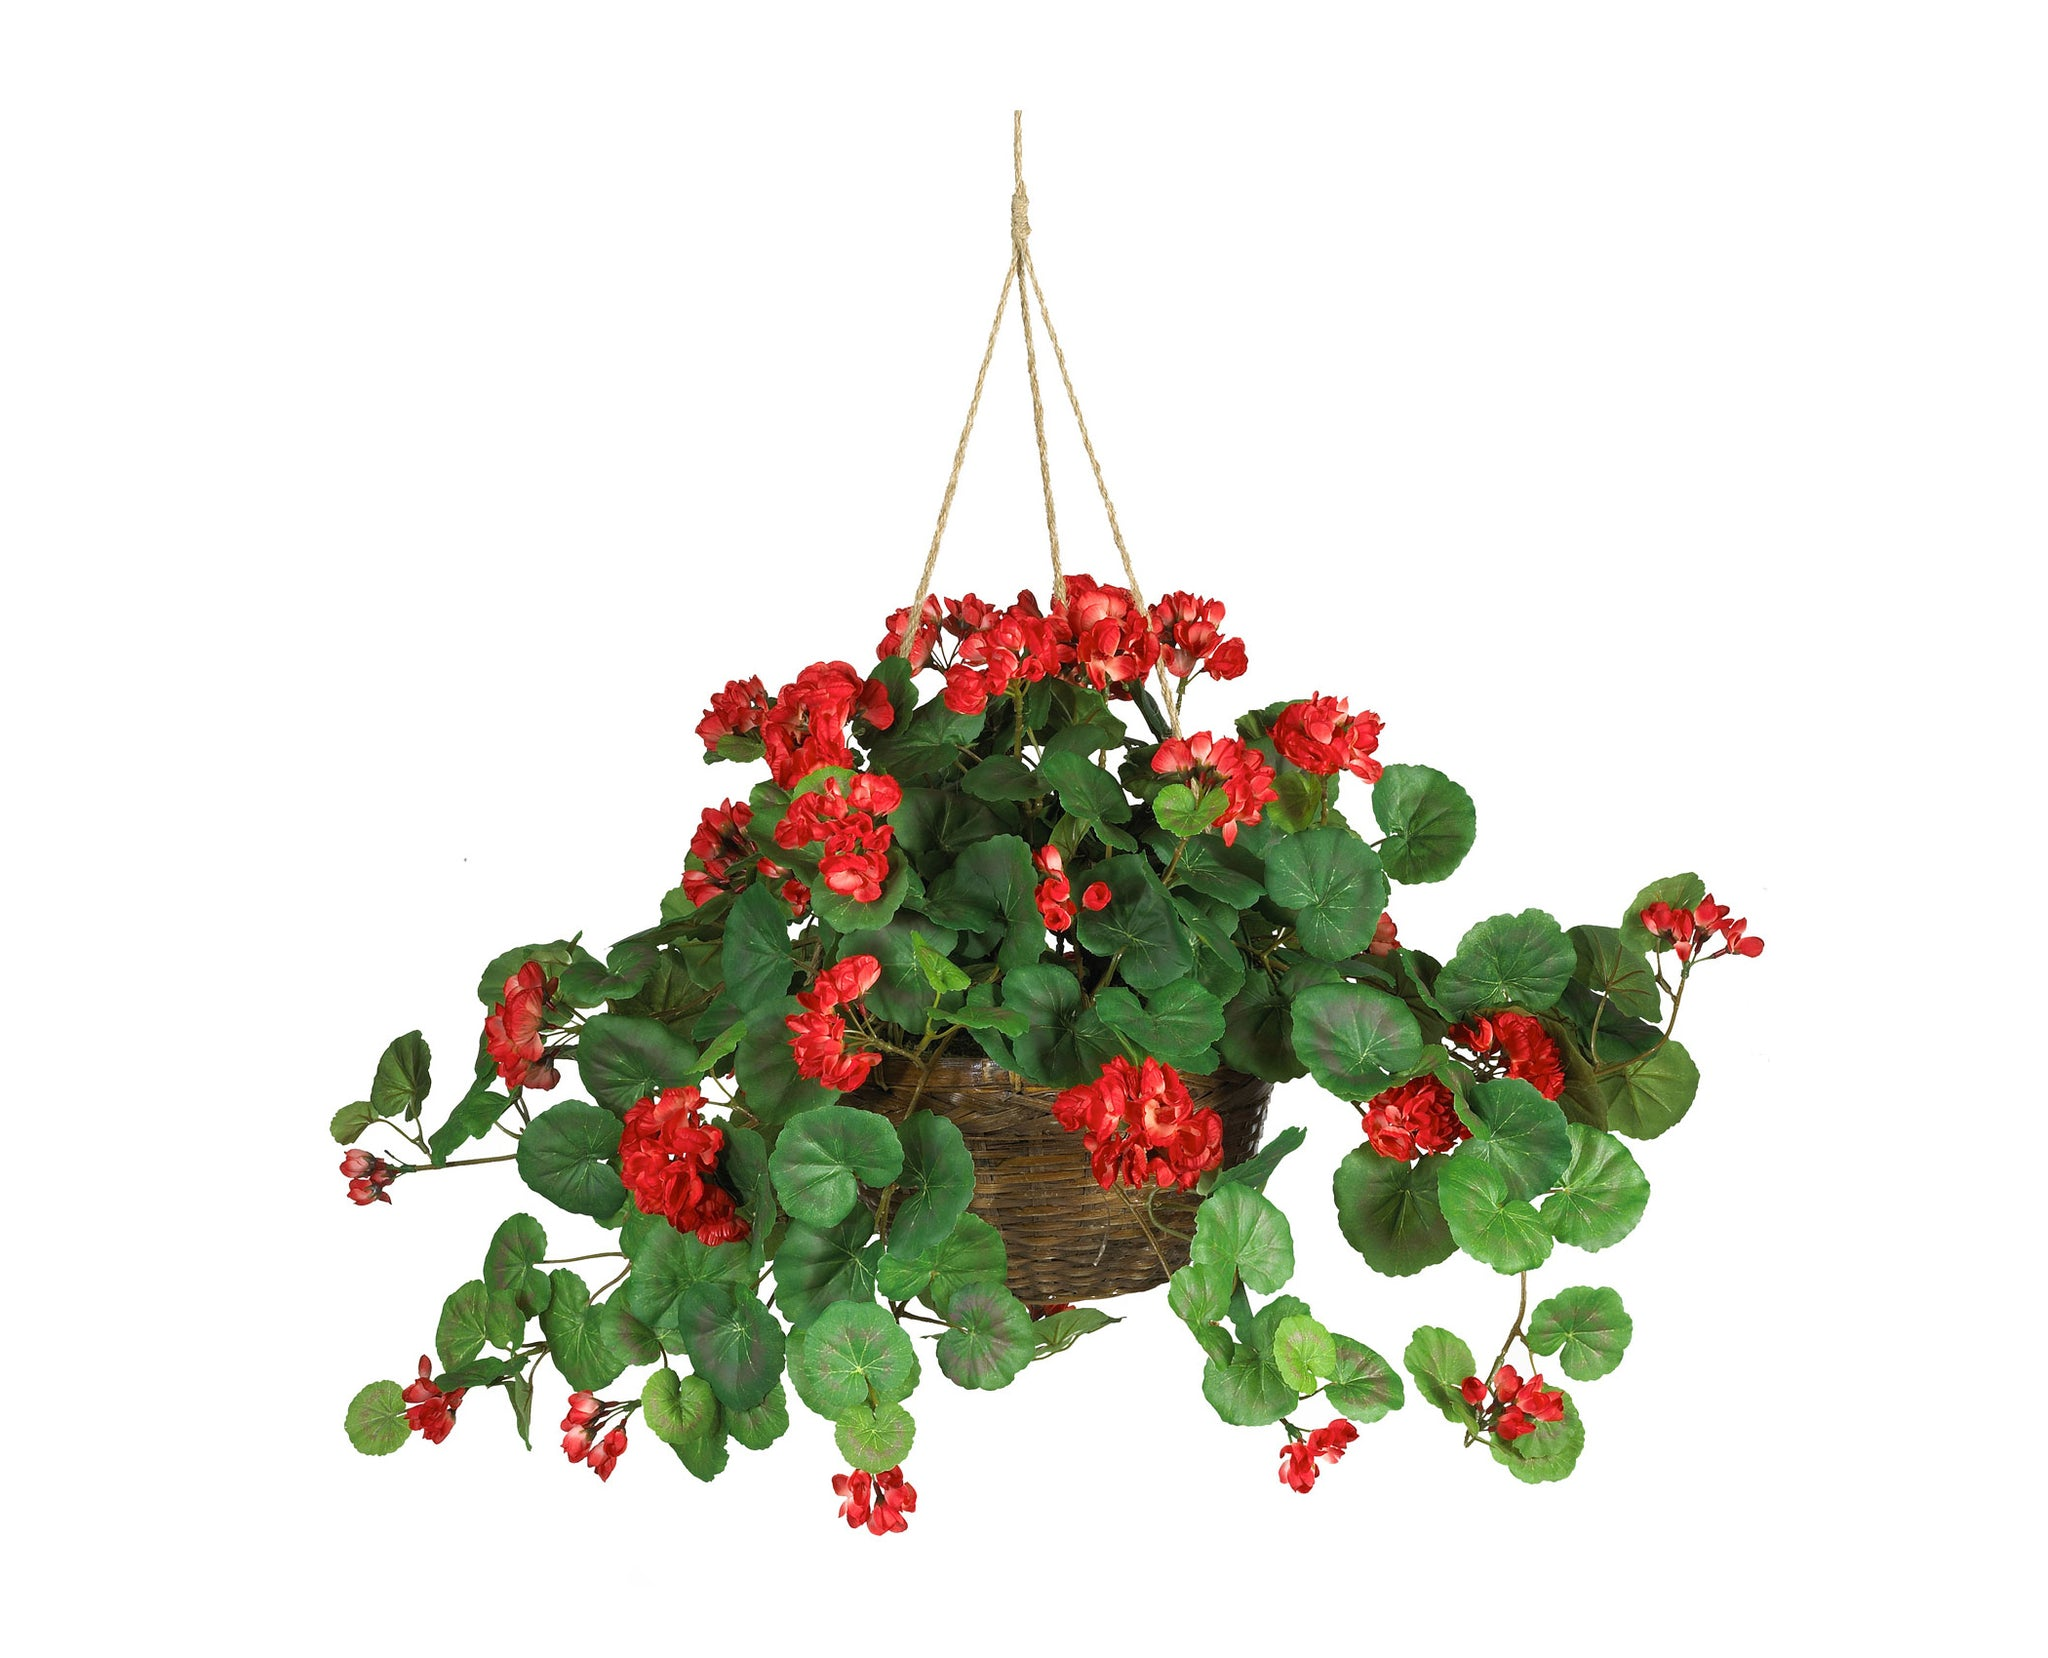 Geranium Red Hanging Baskets